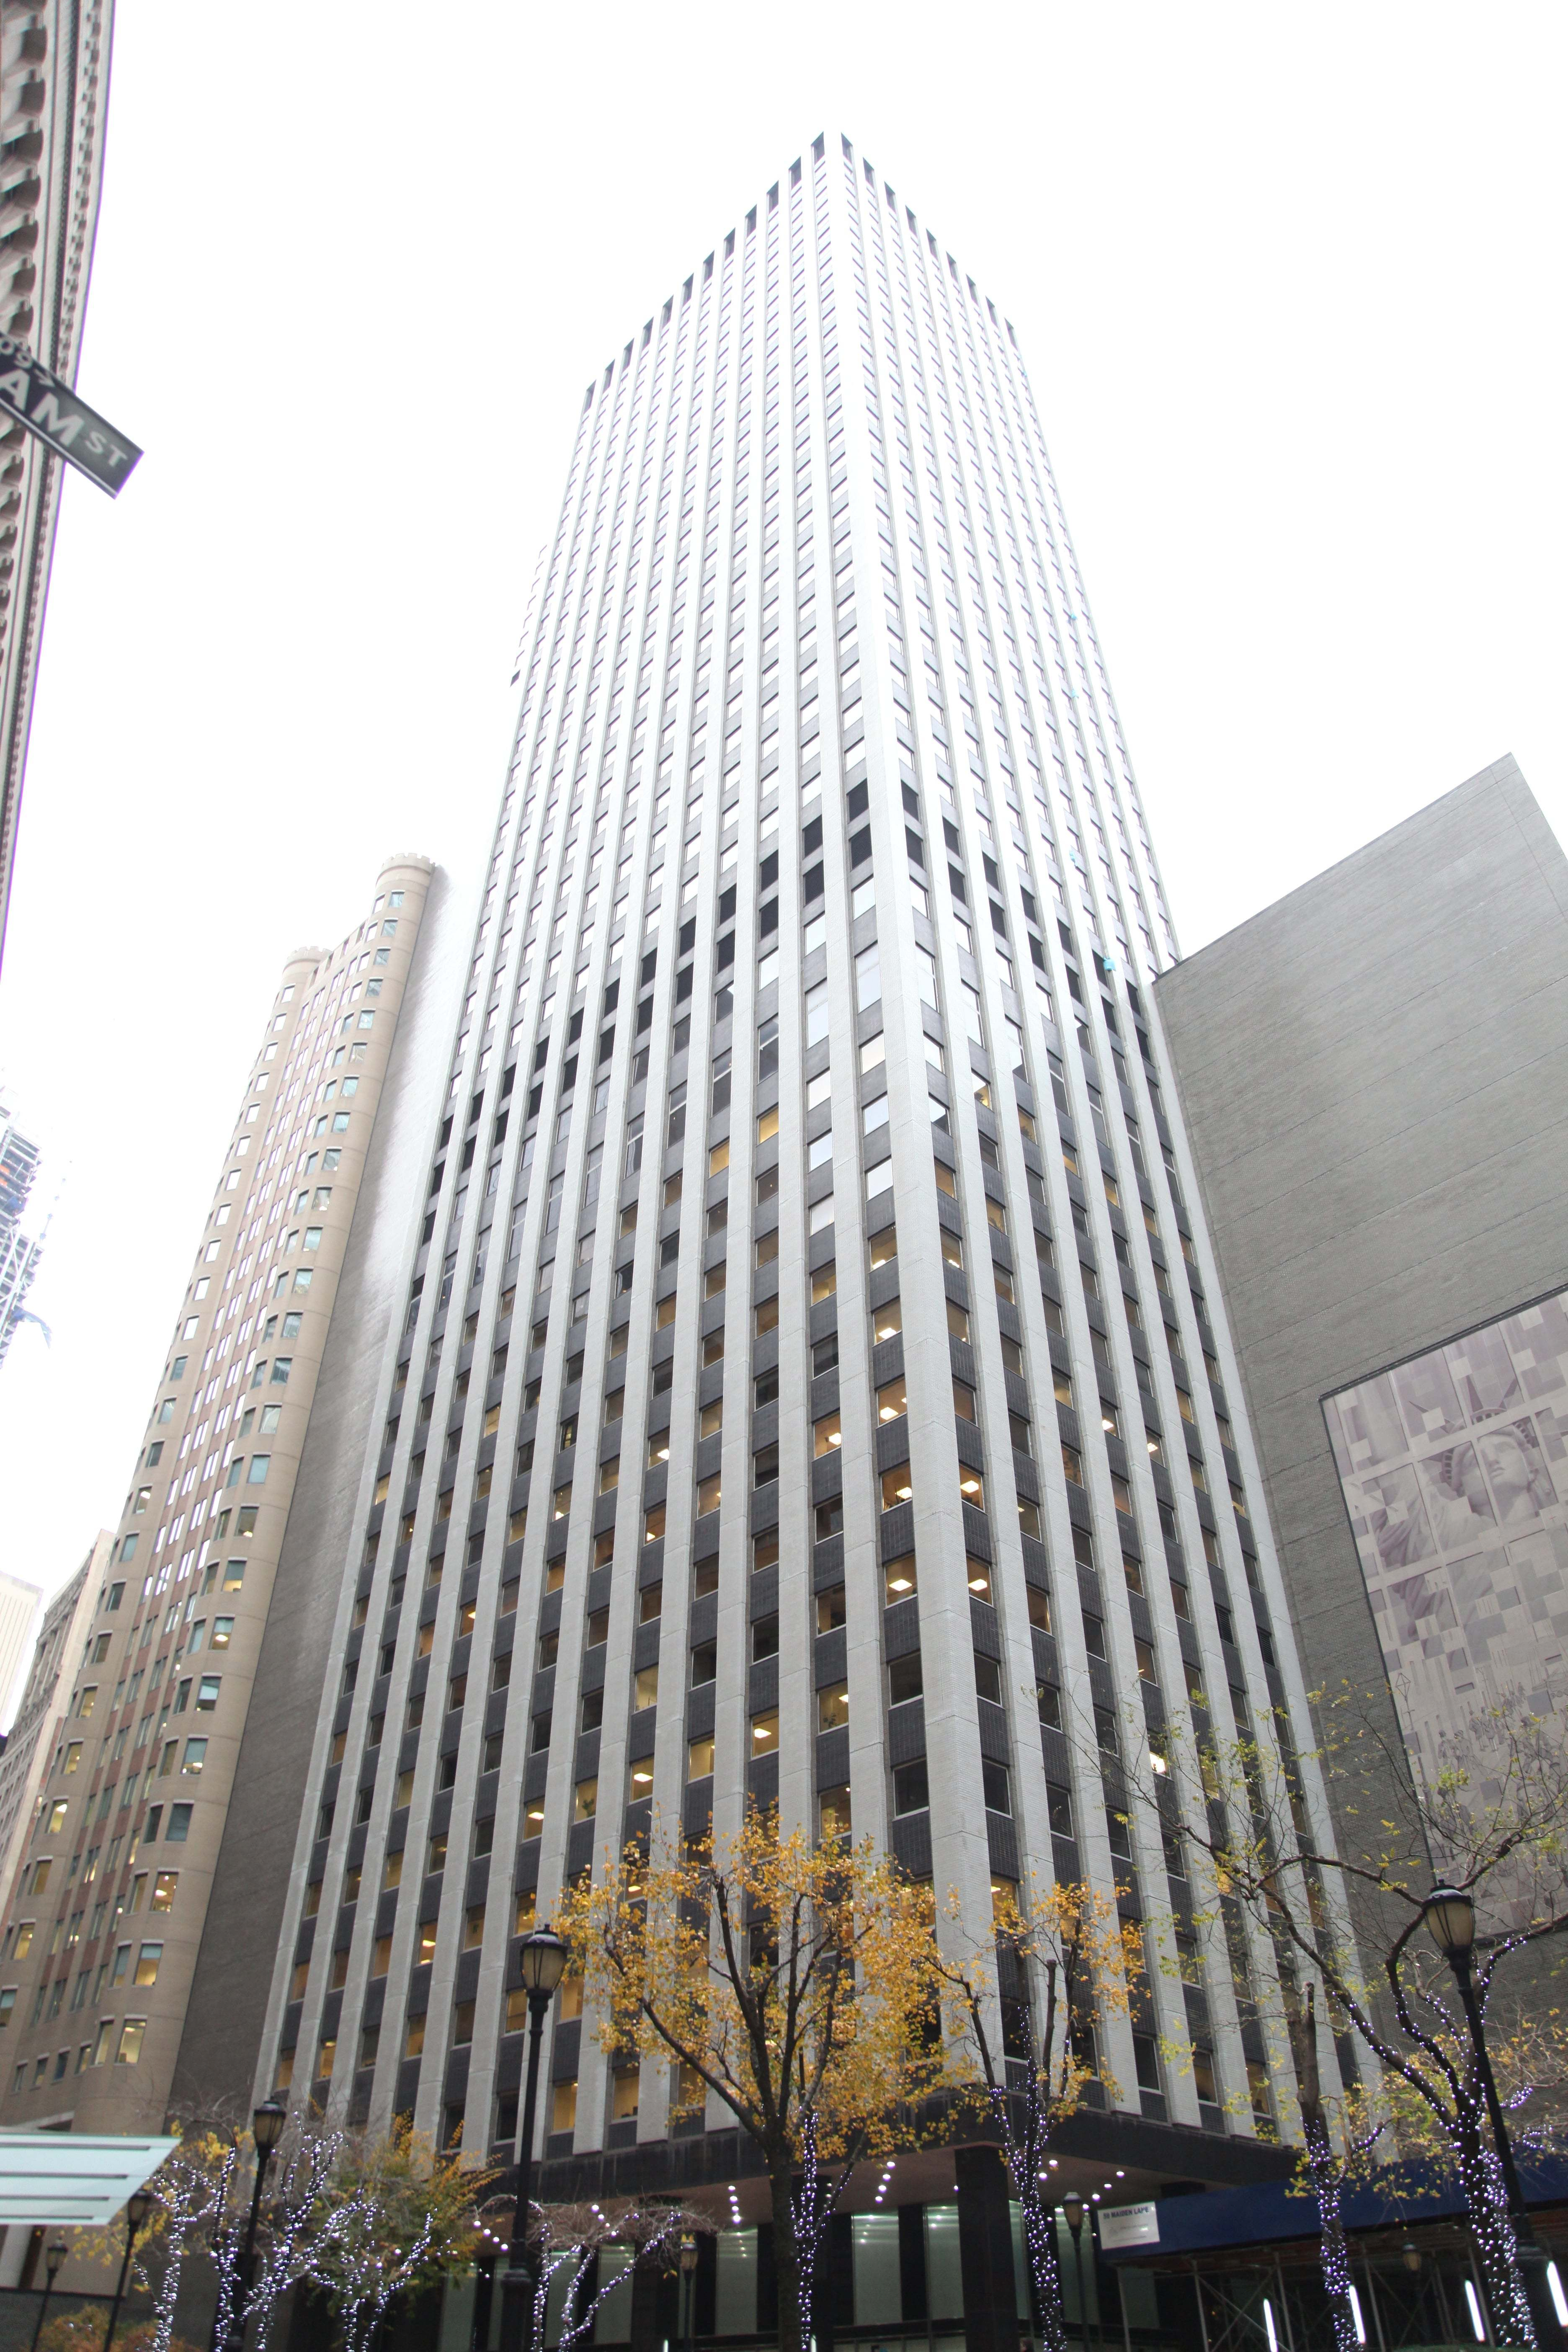 59 Maiden Lane, Financial District, New York, NY 10038 | SquareFoot